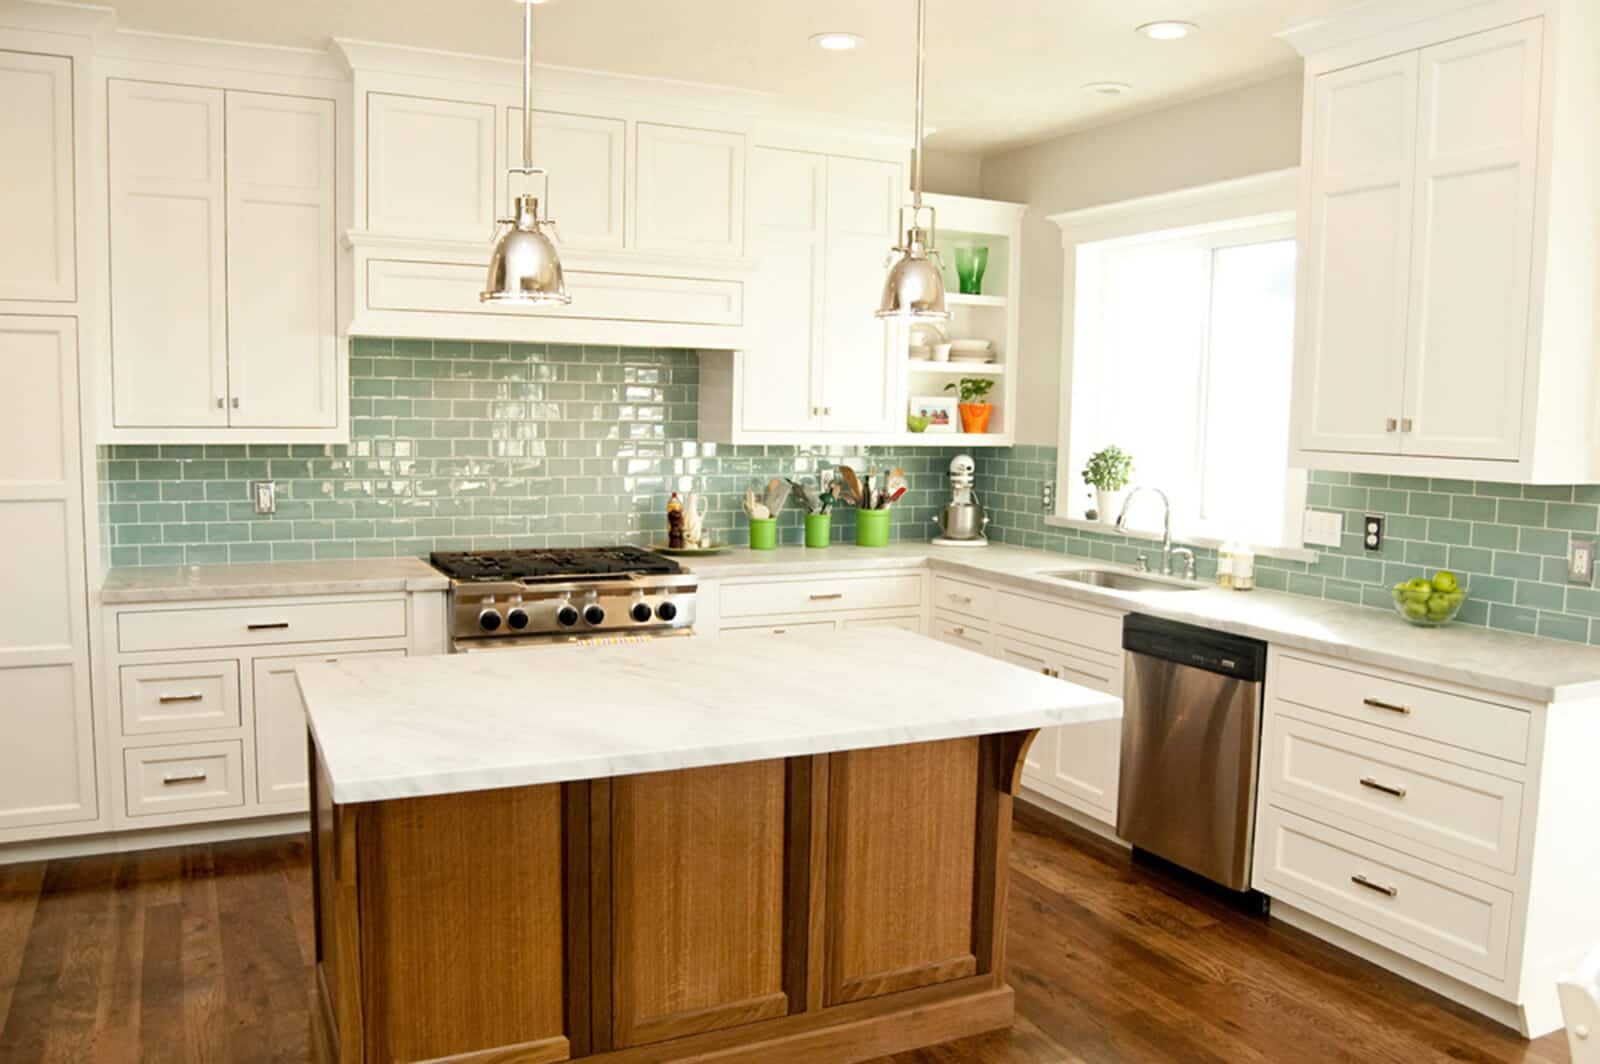 Best Backsplash Ideas For White Kitchen Cabinets